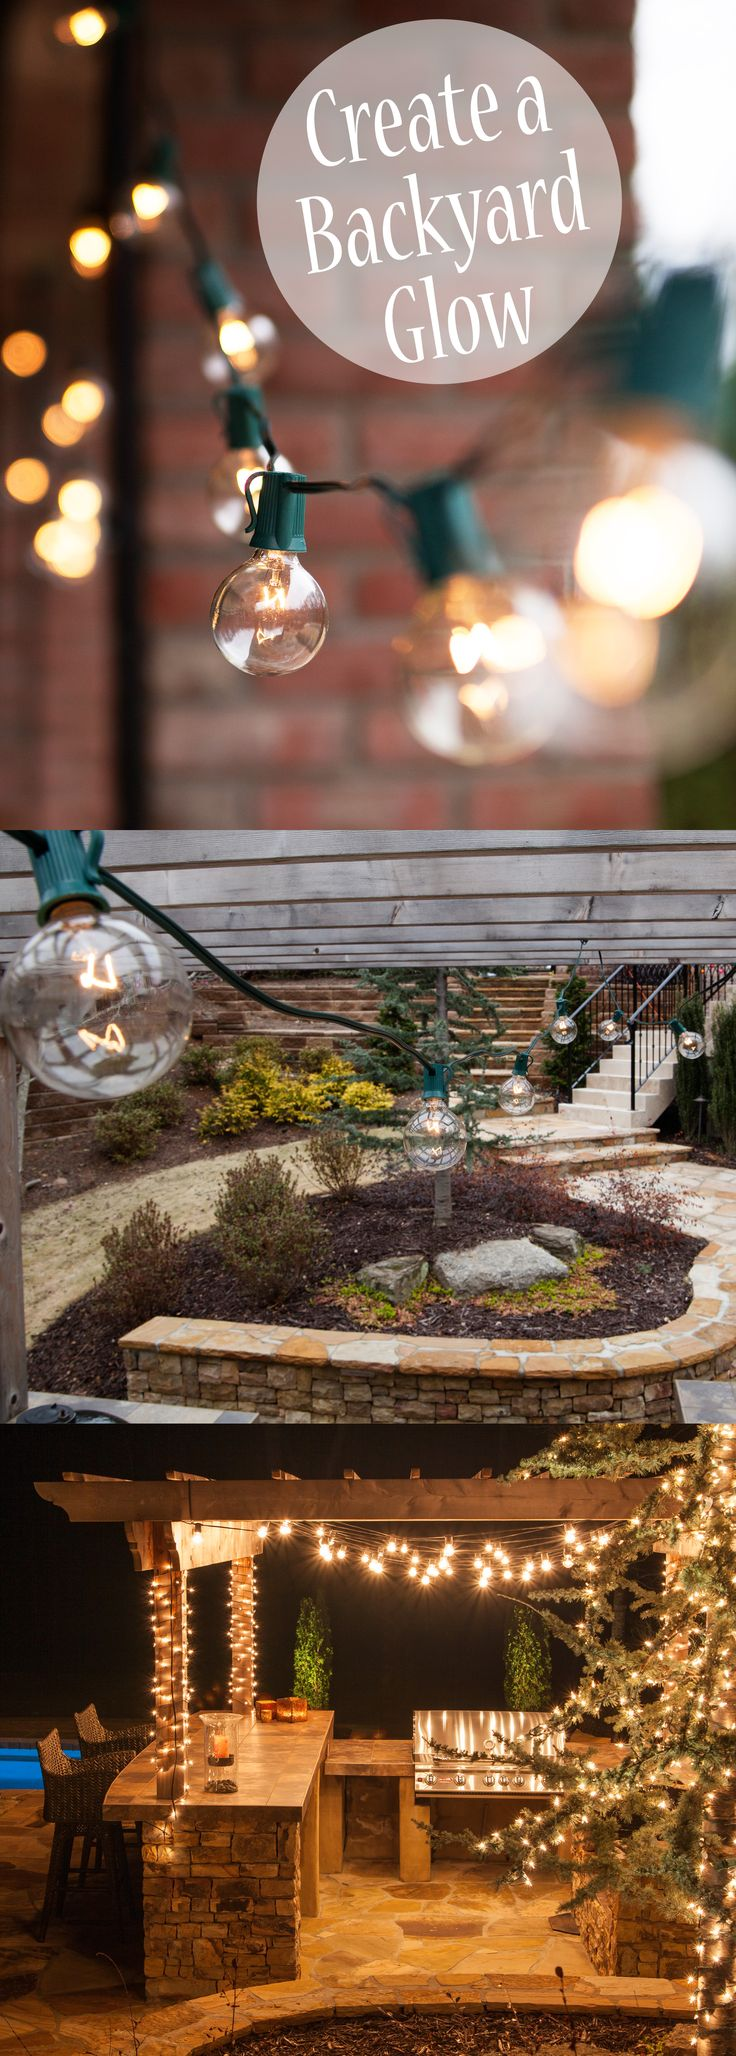 Garden String Lights Pinterest : 1000+ ideas about Patio String Lights on Pinterest String lights outdoor, String lighting and ...